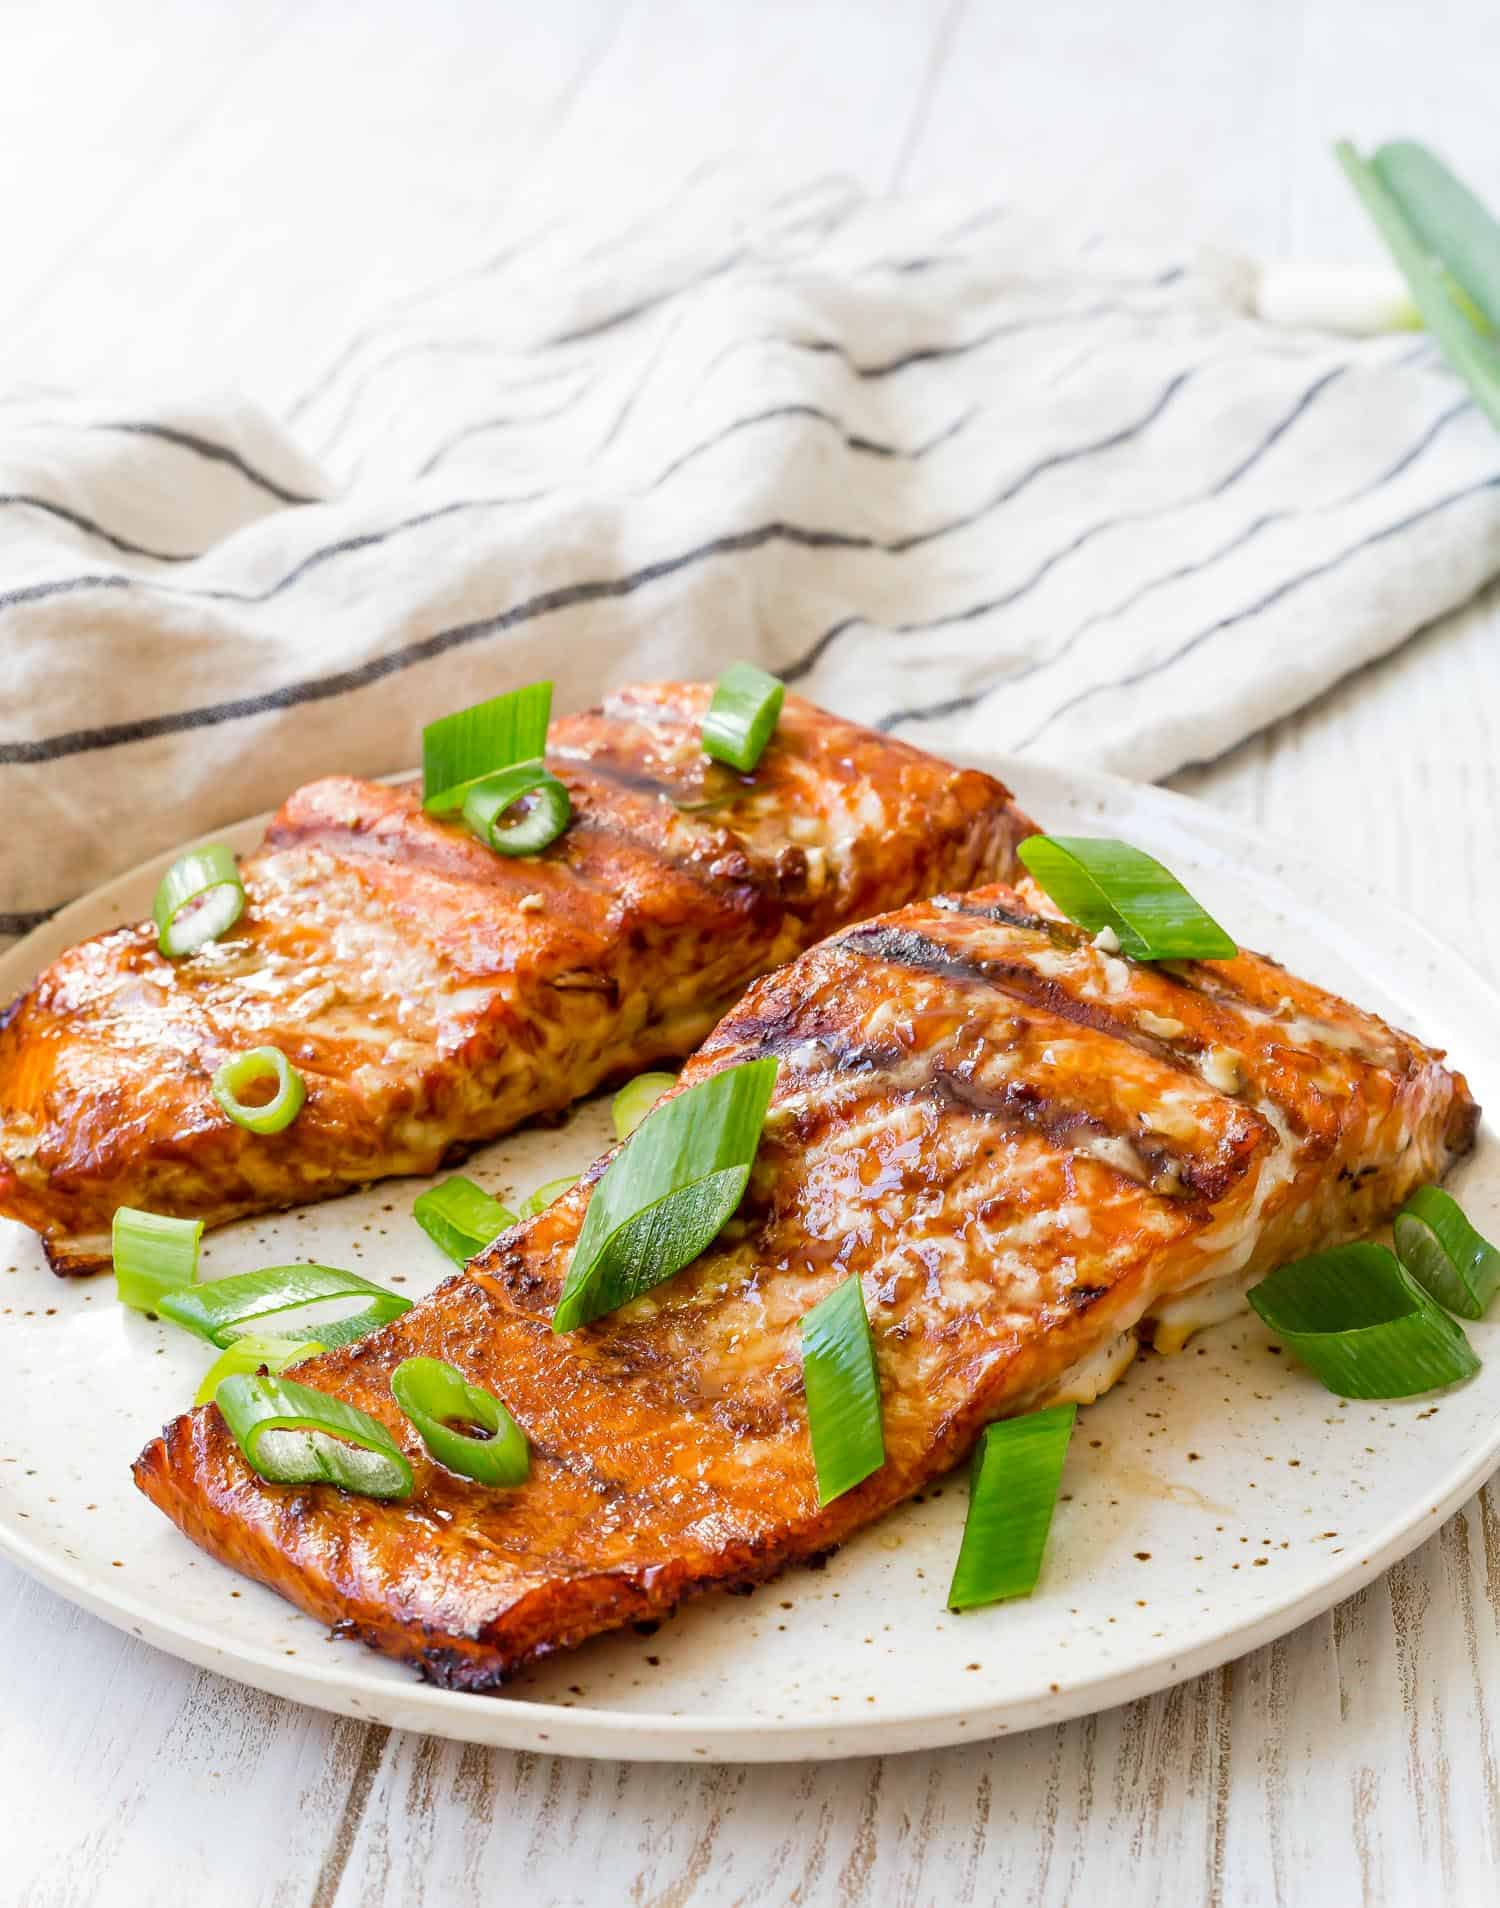 Two fillets of grilled salmon topped with green onion.